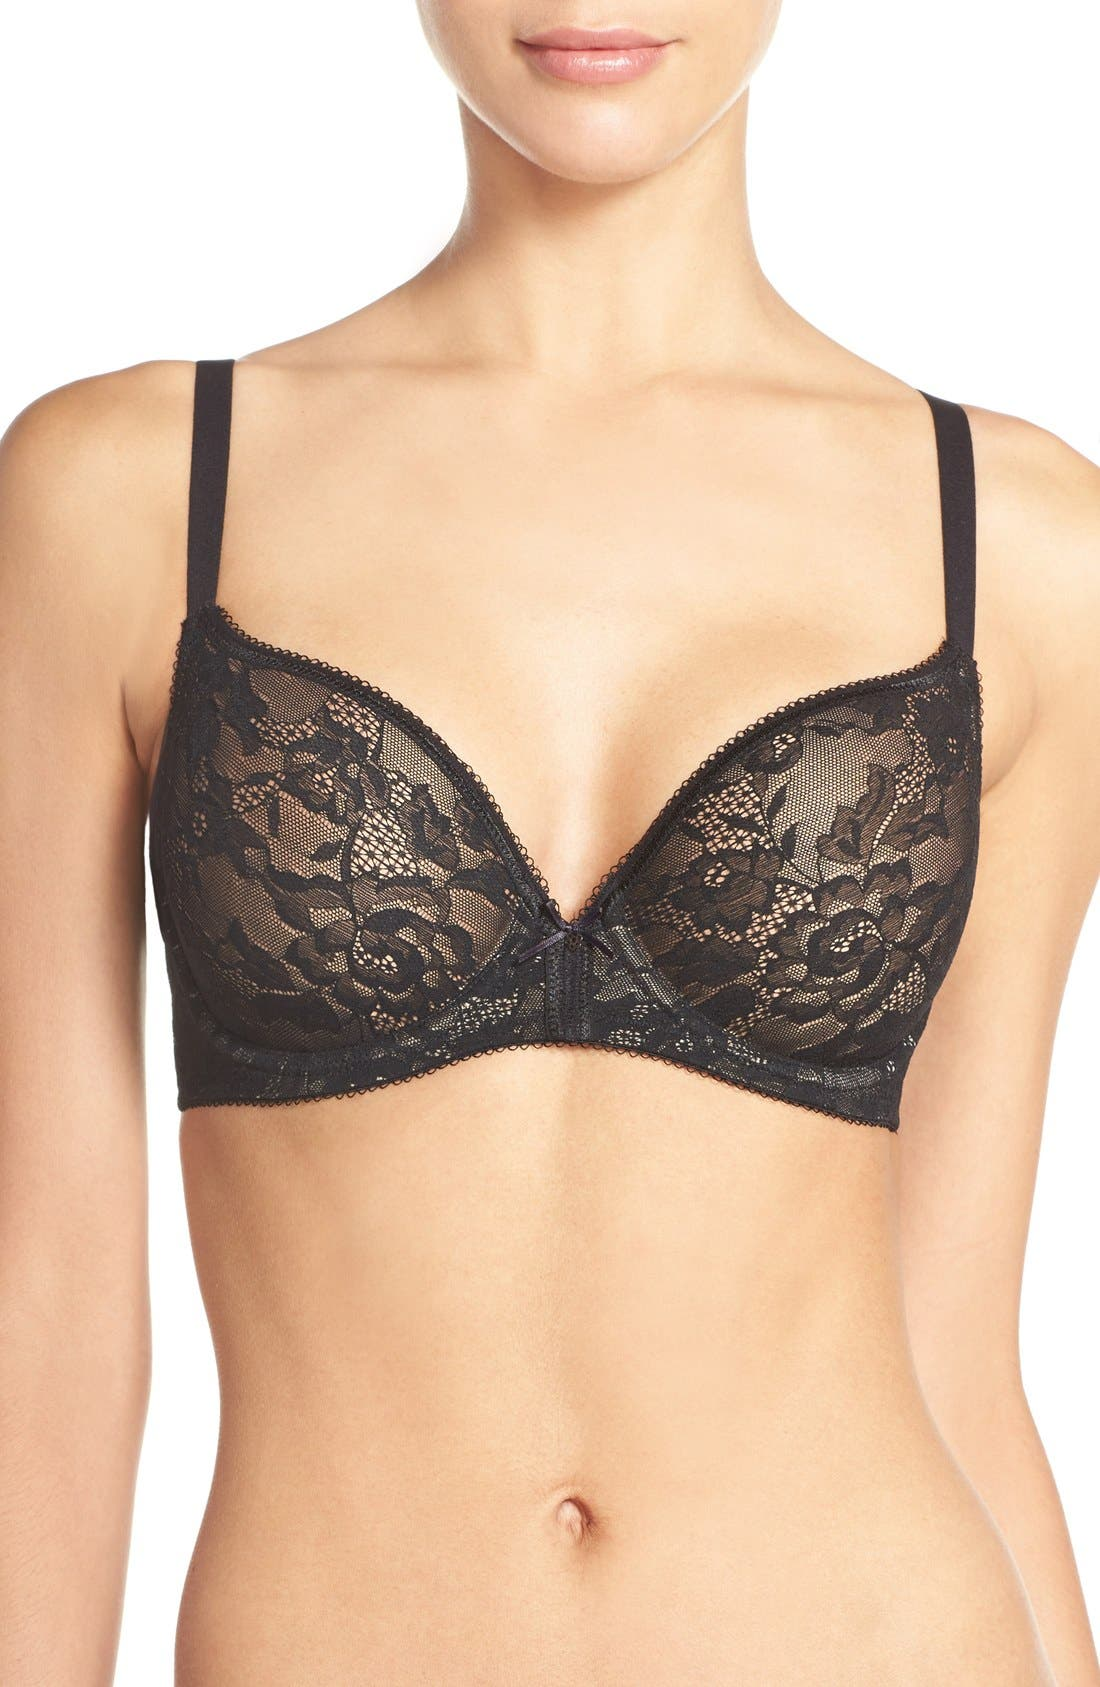 Main Image - Wacoal 'Finesse' Molded Underwire T-Shirt Bra